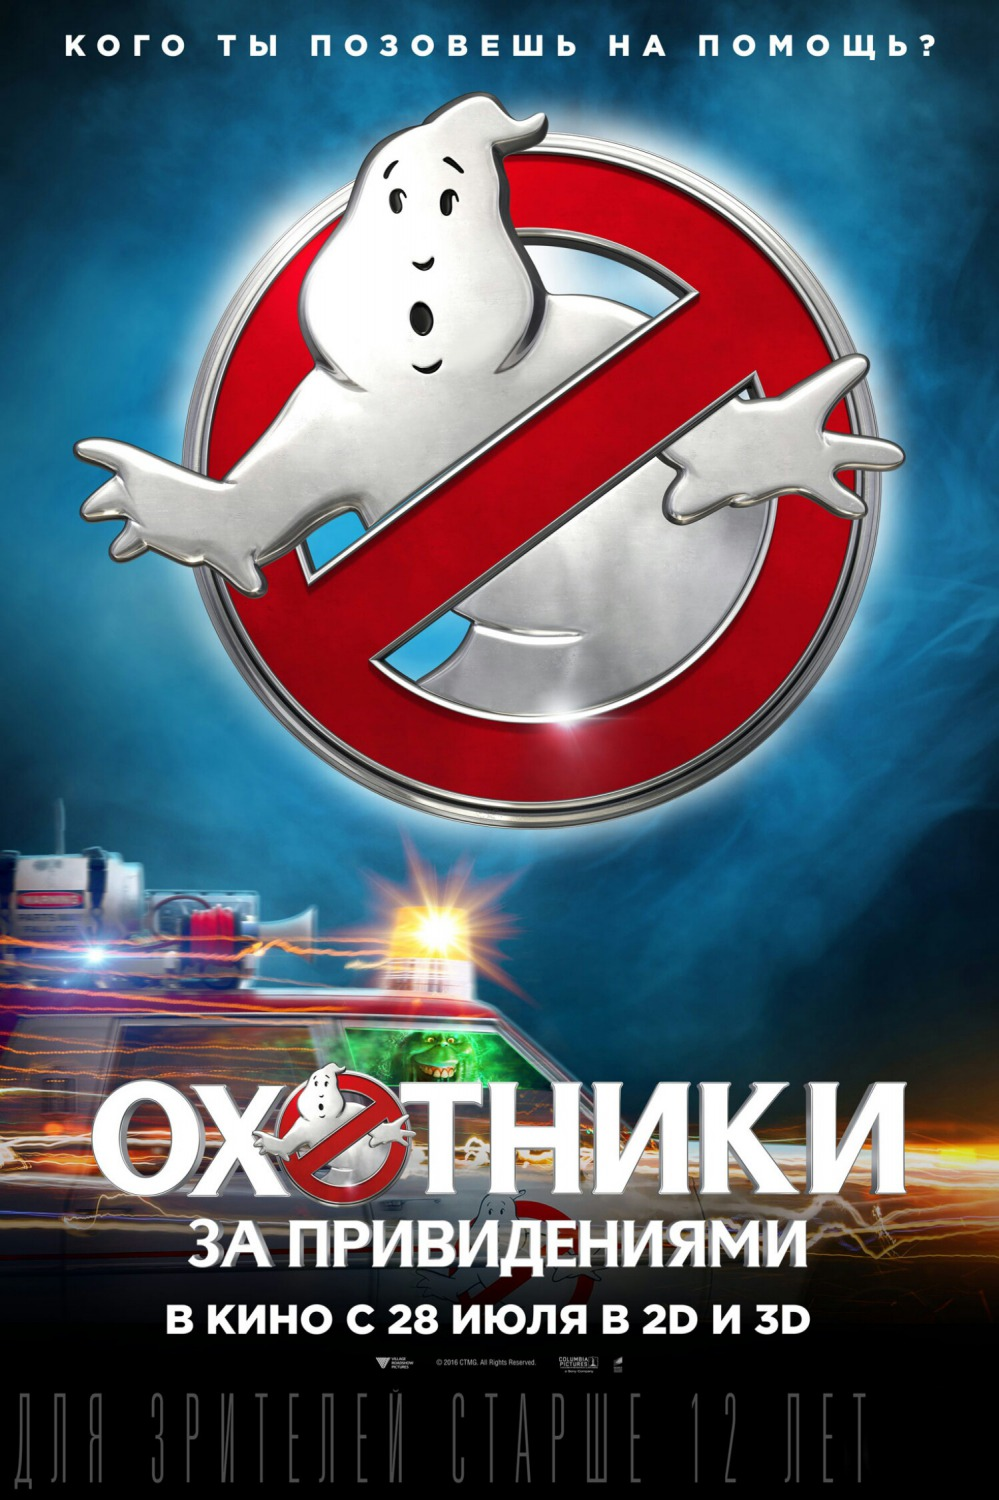 GHOSTBUSTERS (2016) - New Clips, Images and Posters | The ...